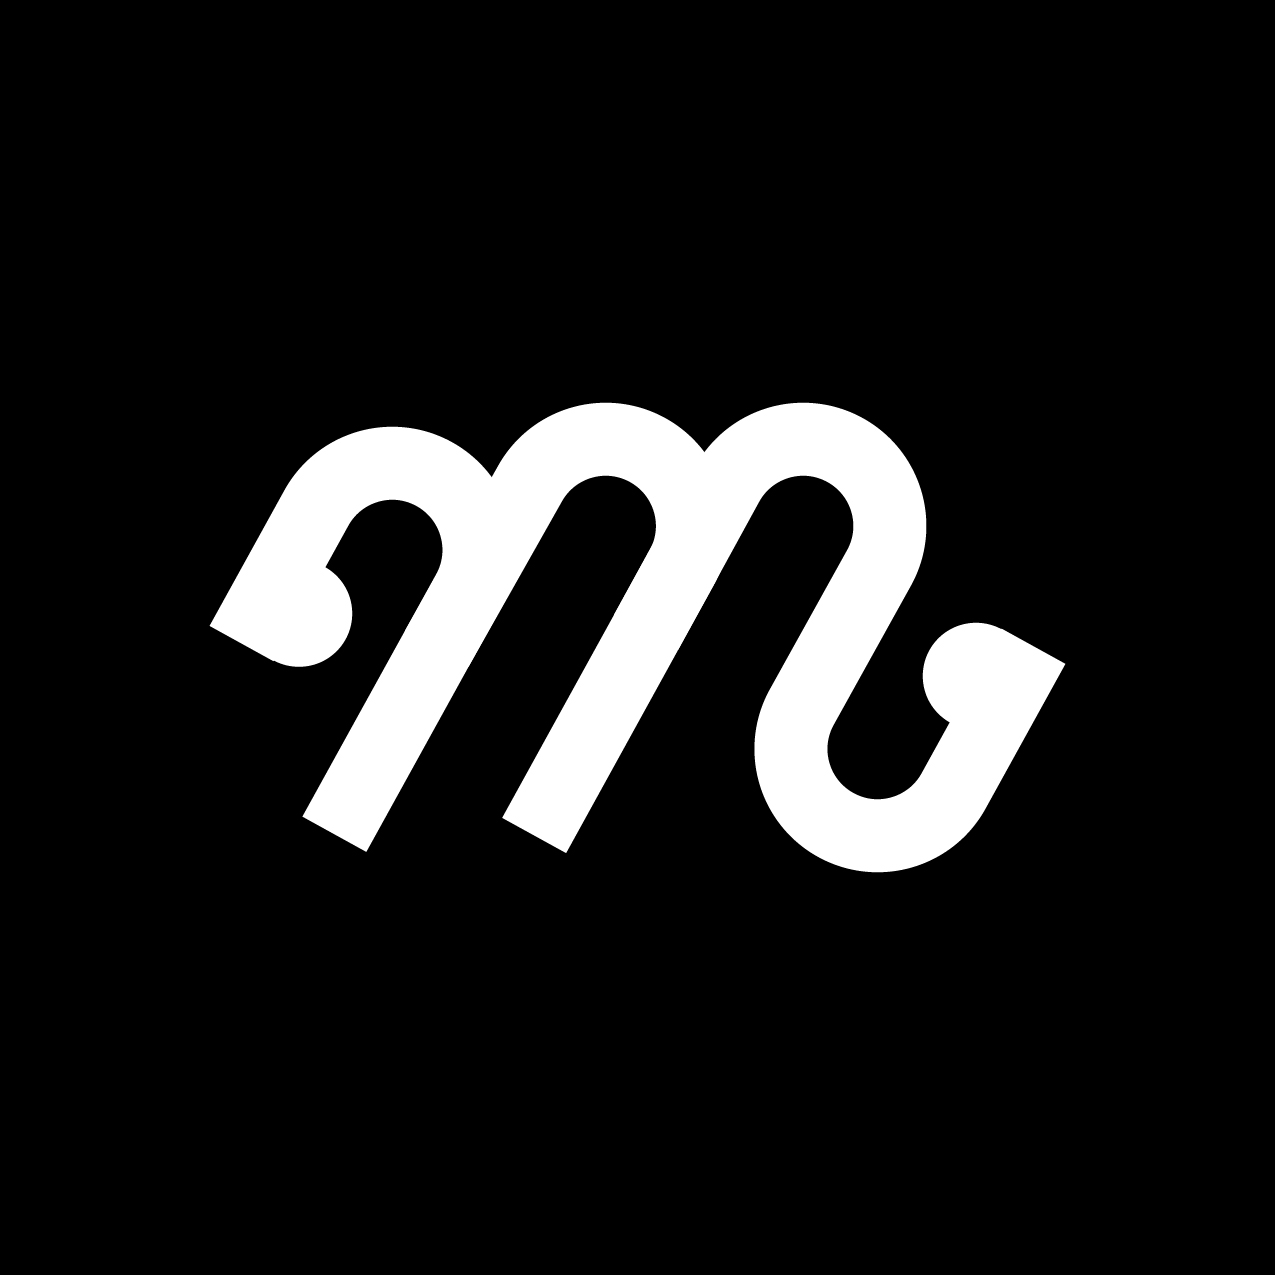 Letter M8 Design by Furia